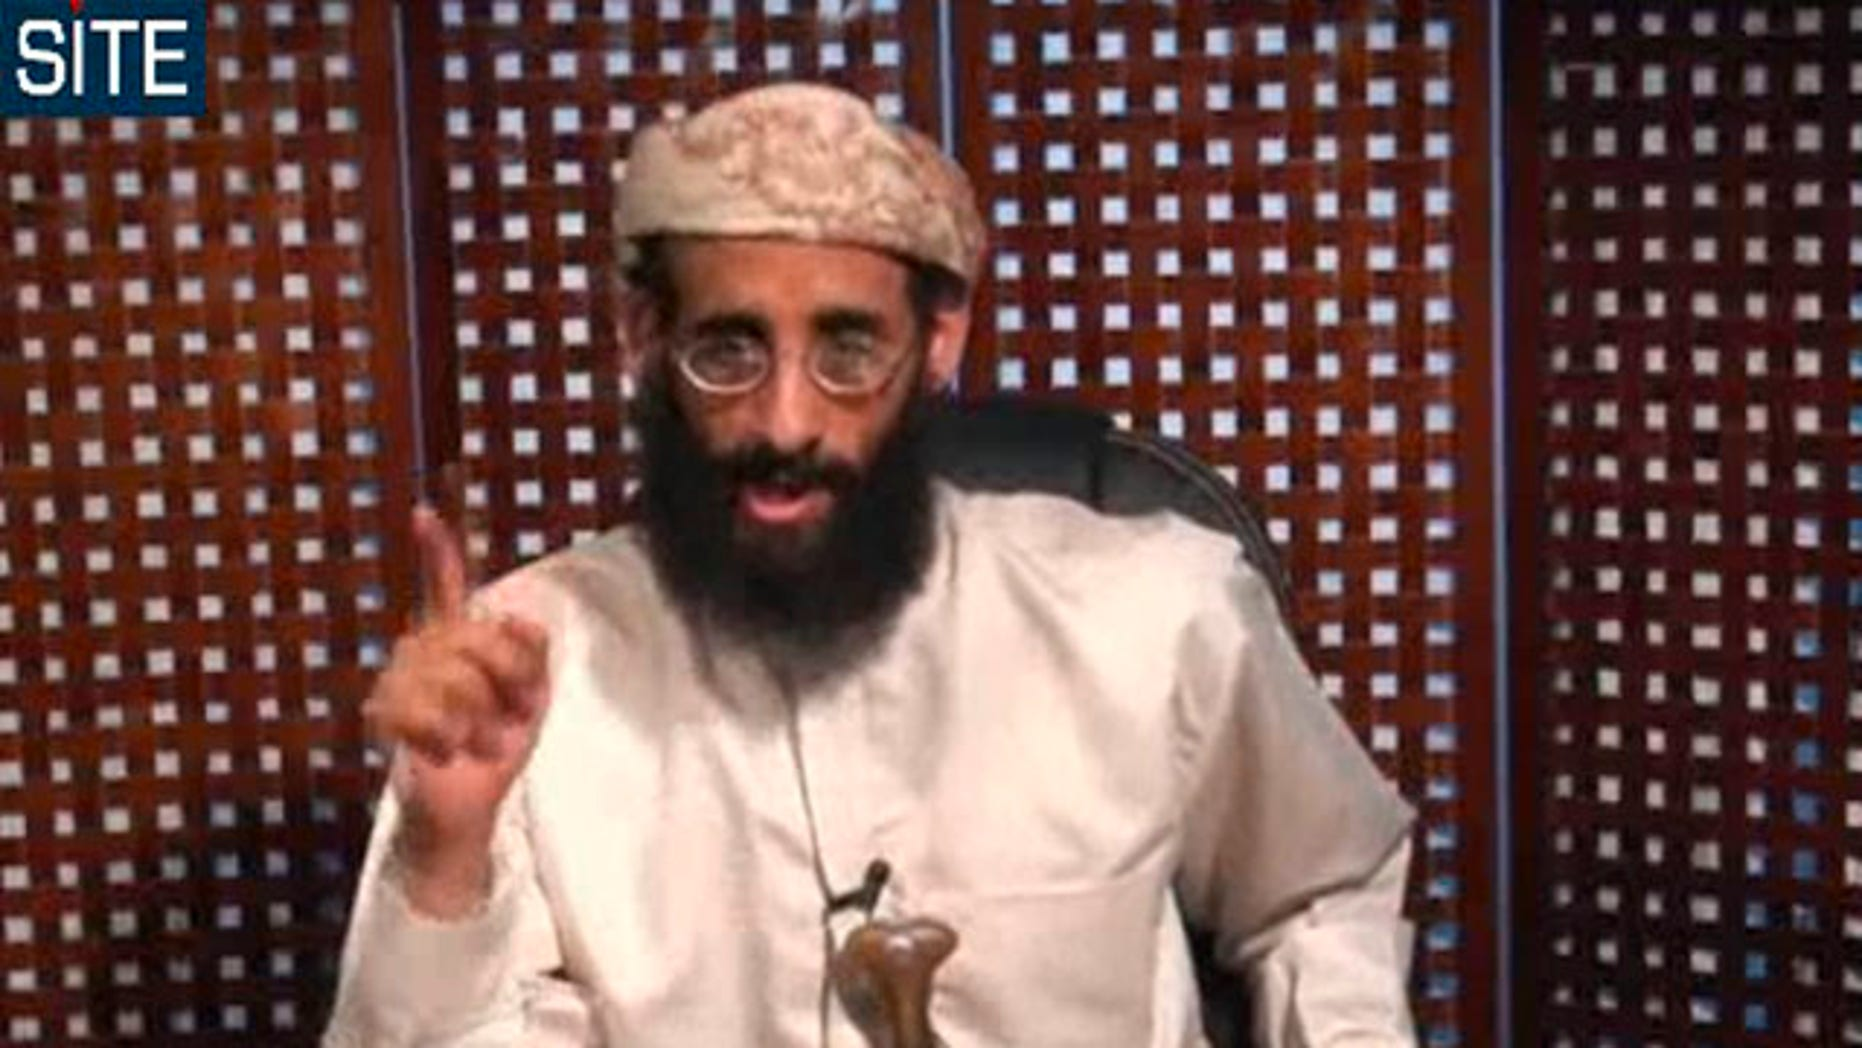 In this Nov. 8, 2010 file photo taken from video and released by SITE Intelligence Group, Anwar al-Awlaki speaks in a video message posted on radical websites.